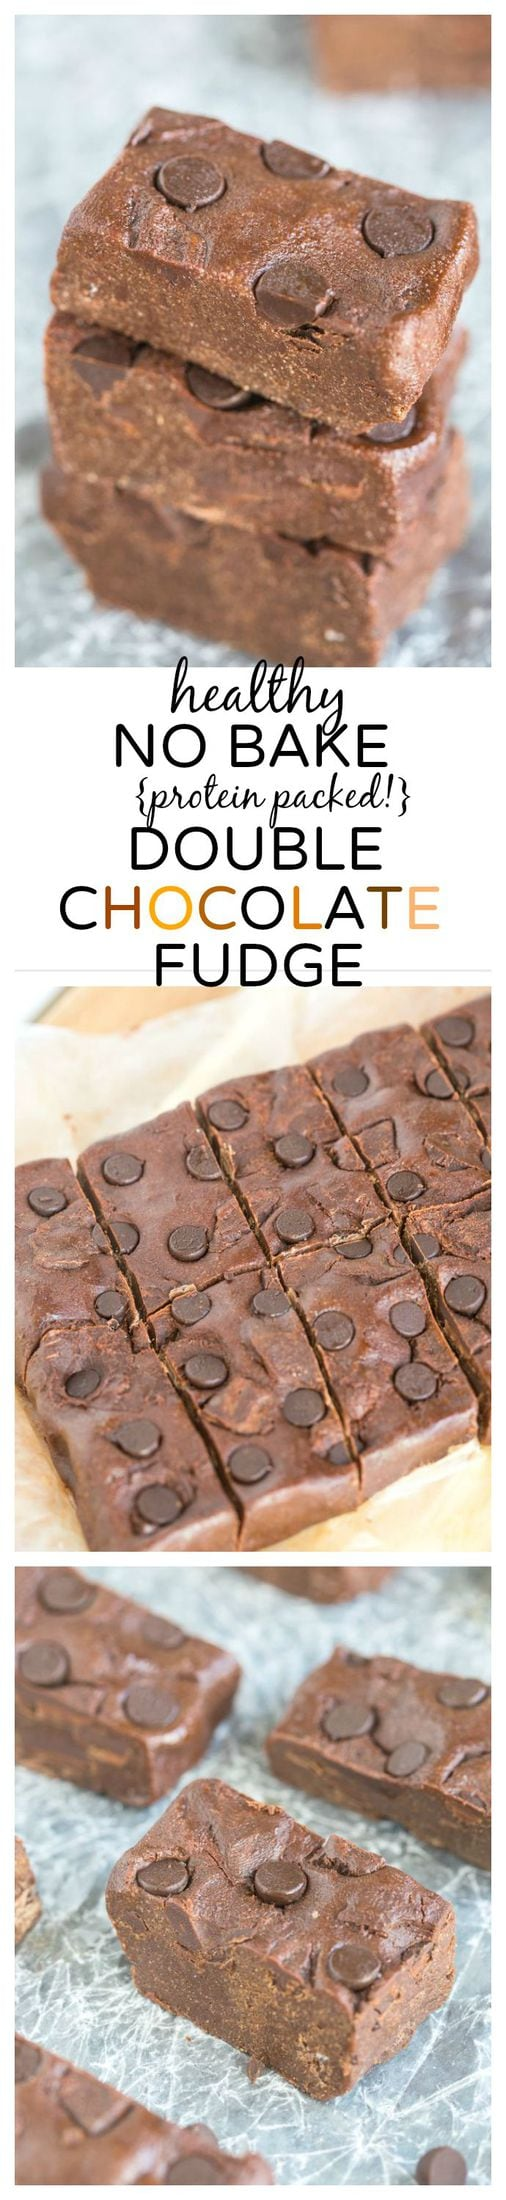 Healthy No Bake Double Chocolate Fudge- A delicious dessert or snack- naturally gluten free, there's a vegan, paleo and high protein option!